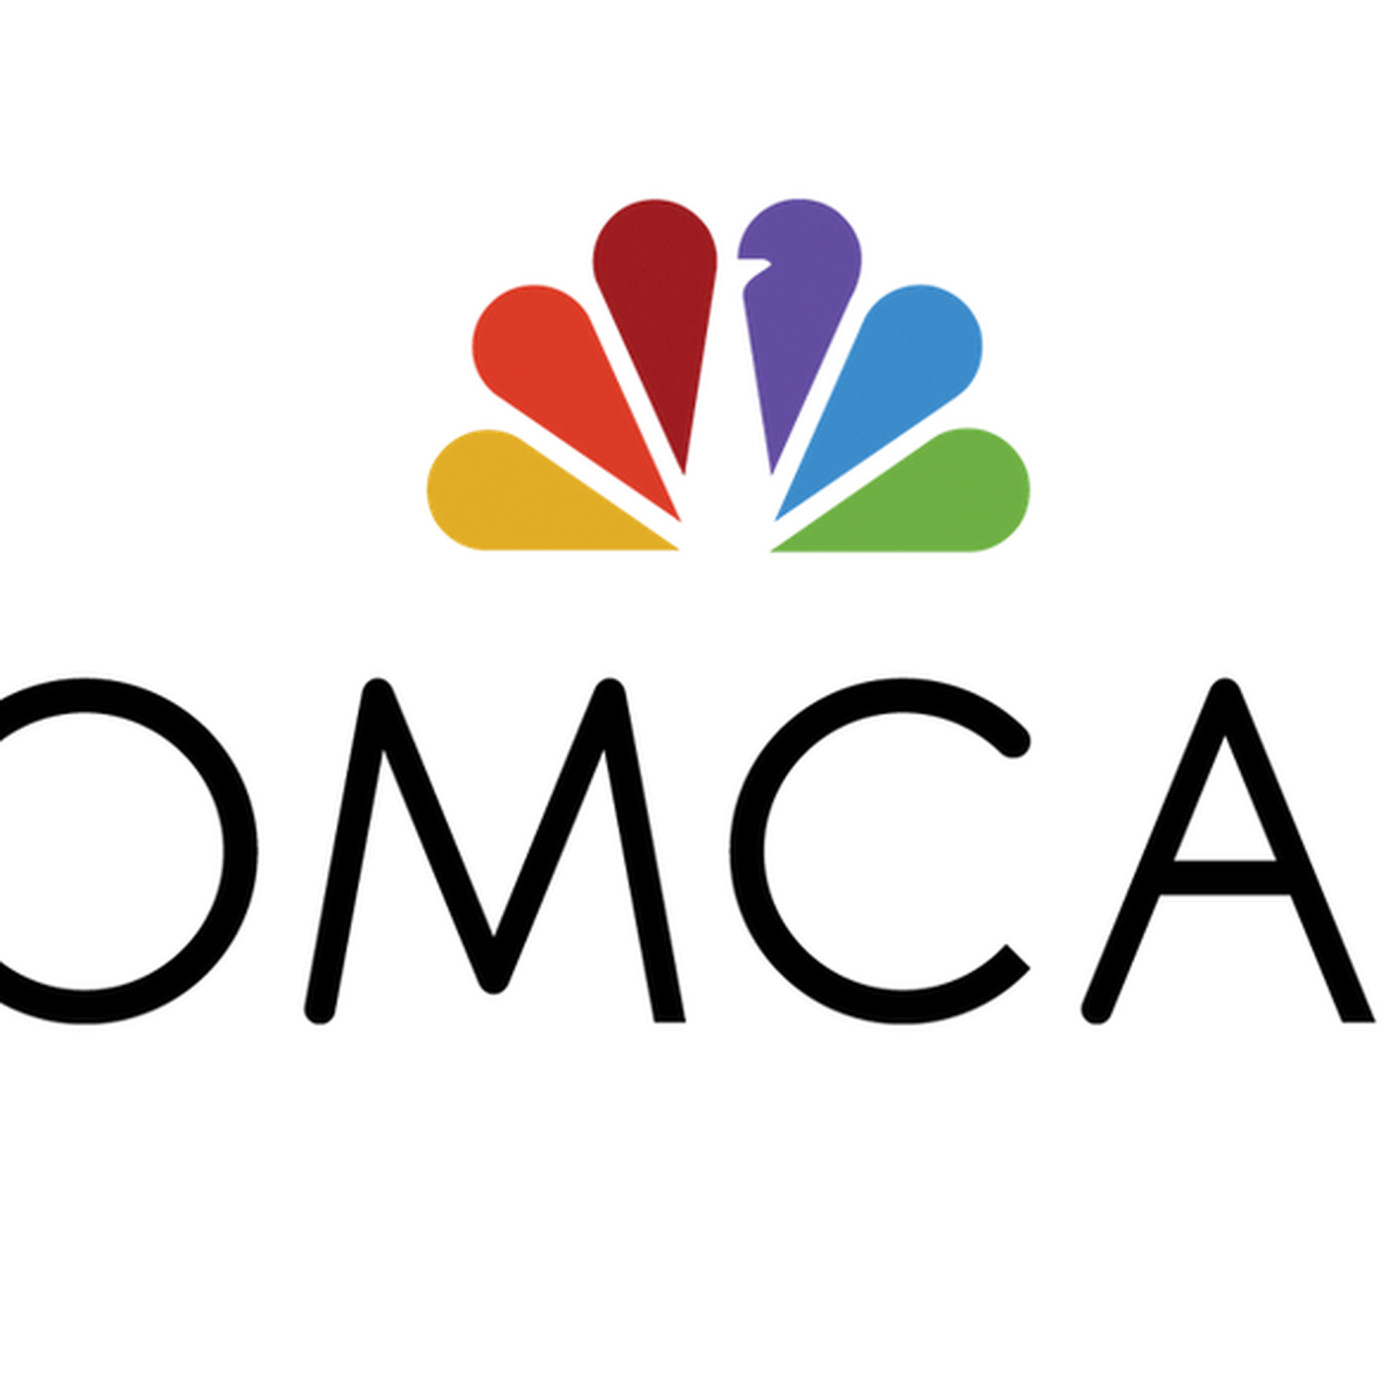 Comcast Adopts Nbc Peacock As Part Of New Logo The Verge